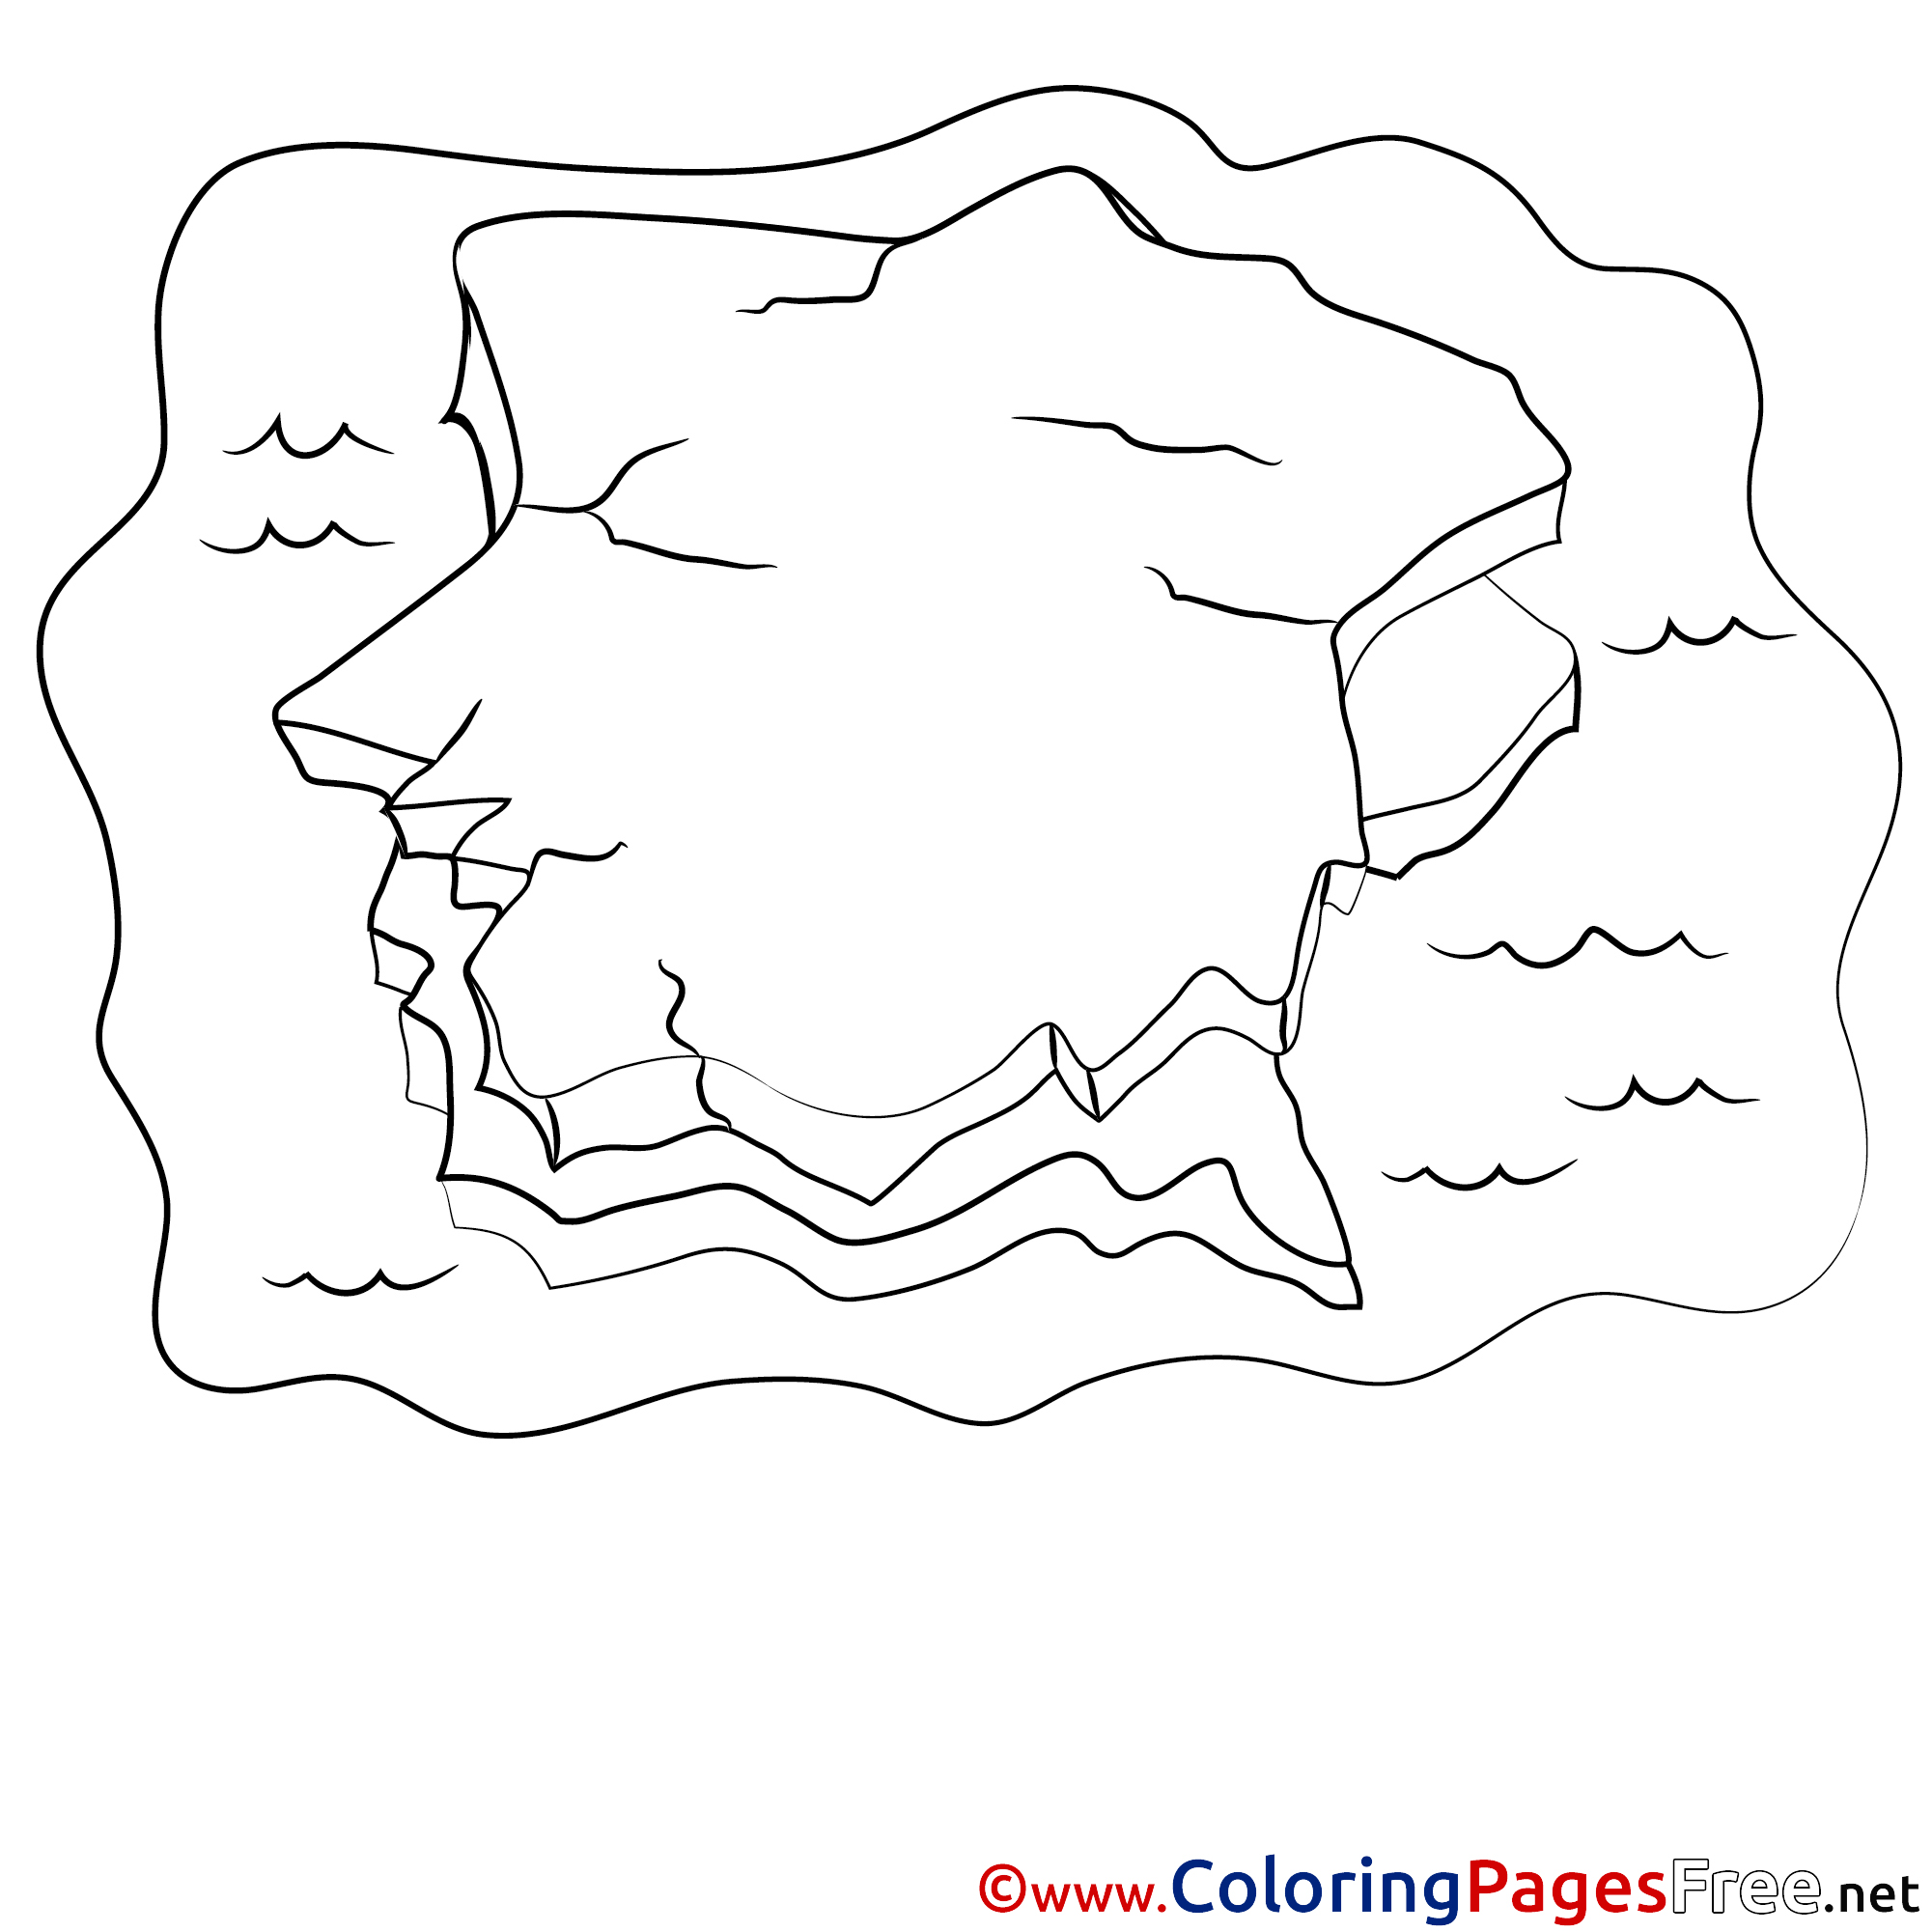 2001x2001 Iceberg Coloring Pages Printable Iceberg And Penguin Coloring Page